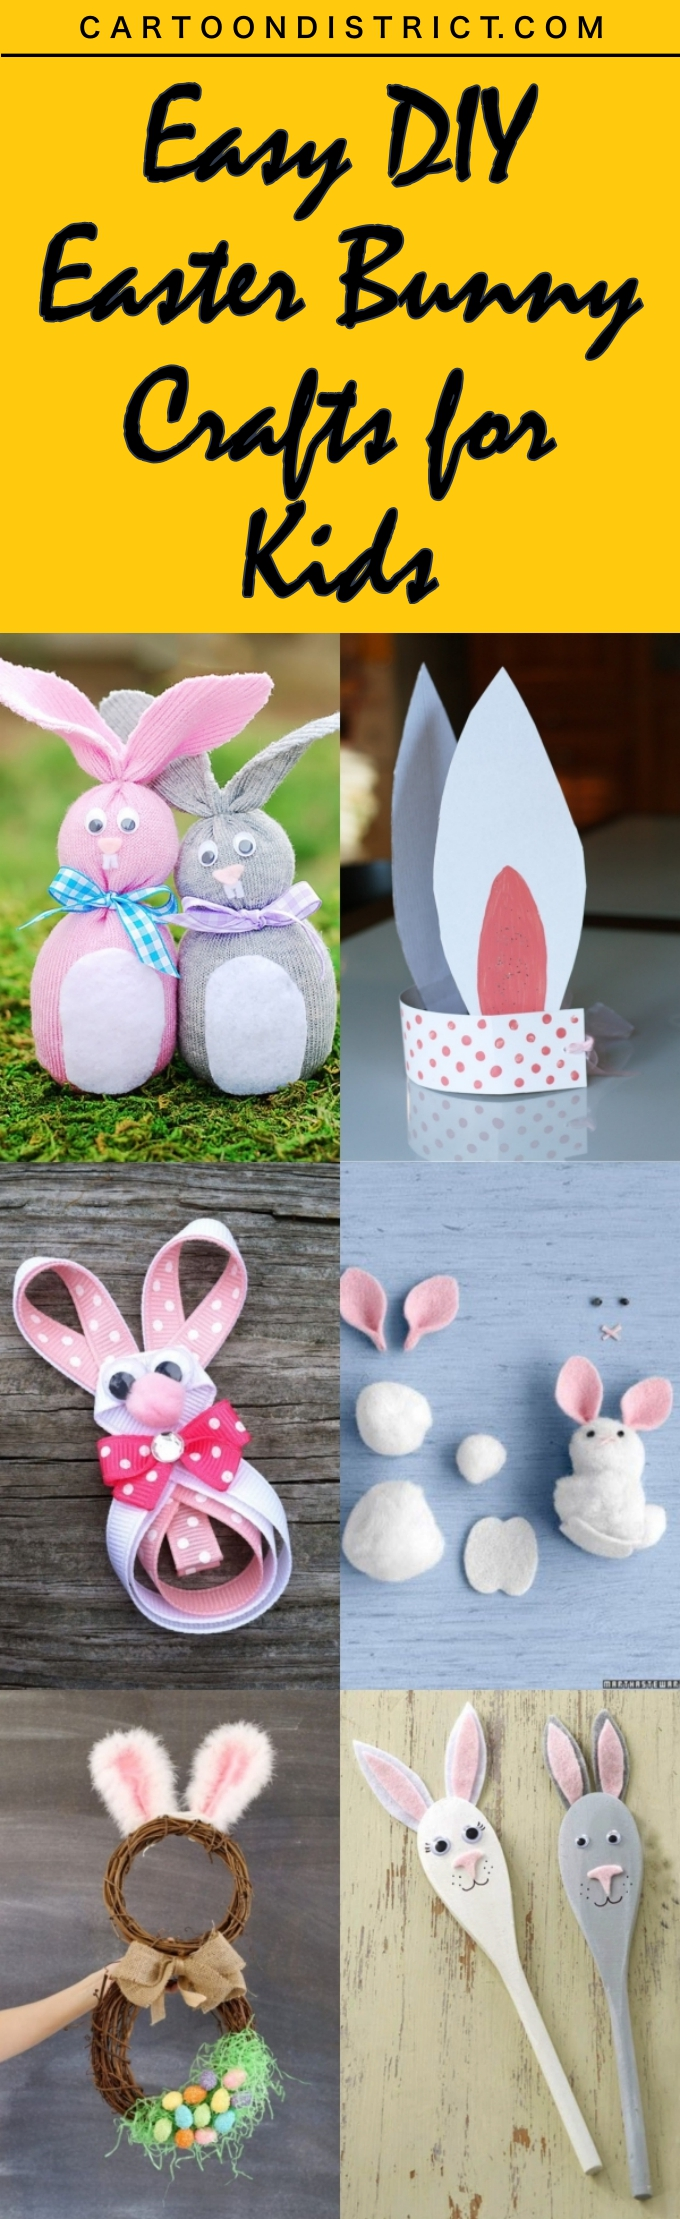 Easy DIY Easter Bunny Crafts for Kids